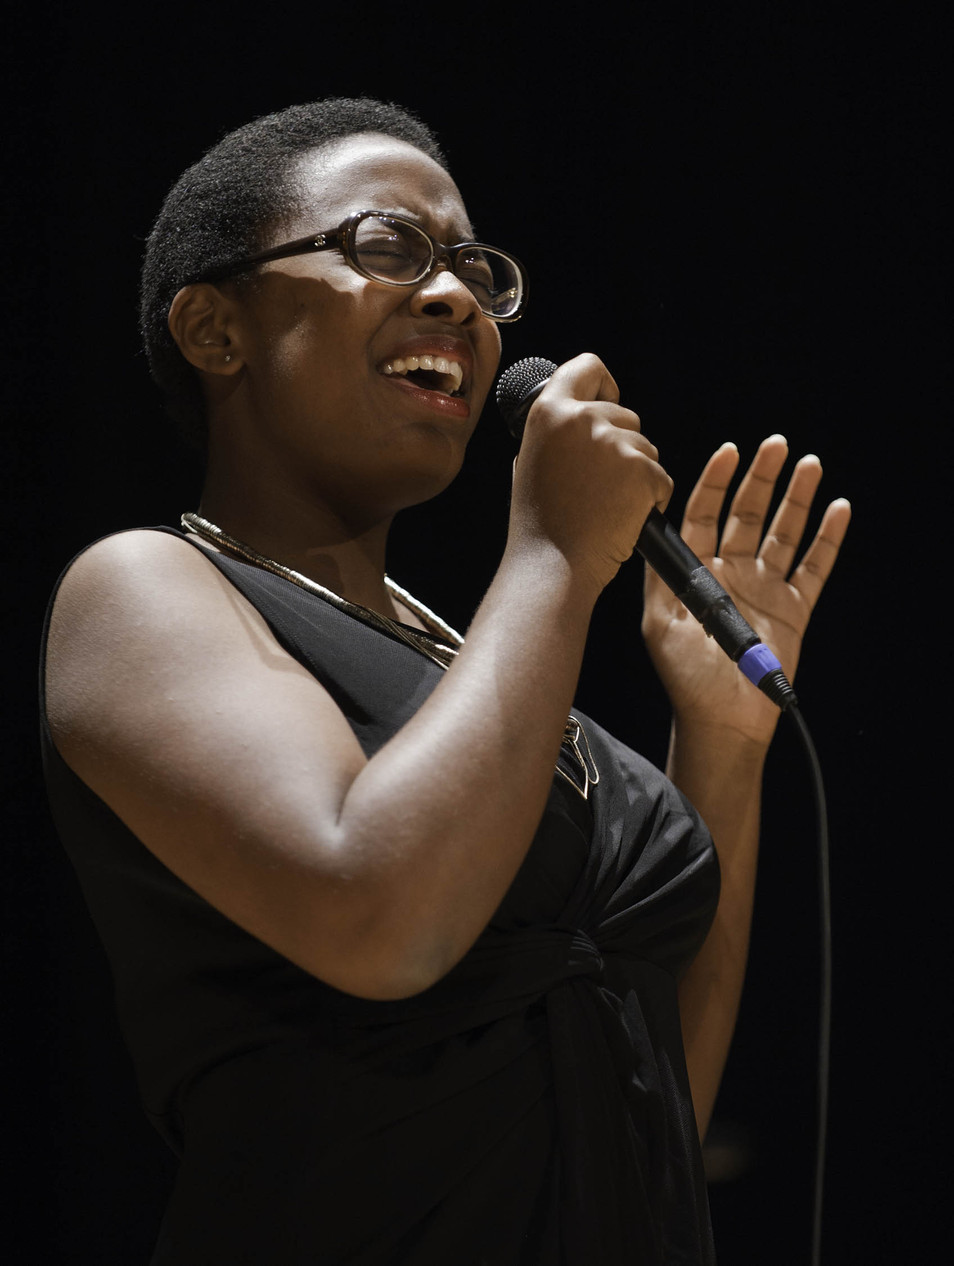 First_place_winner_Cecile_McLorin_Salvant__photo_by_Ronnie_James__03_1